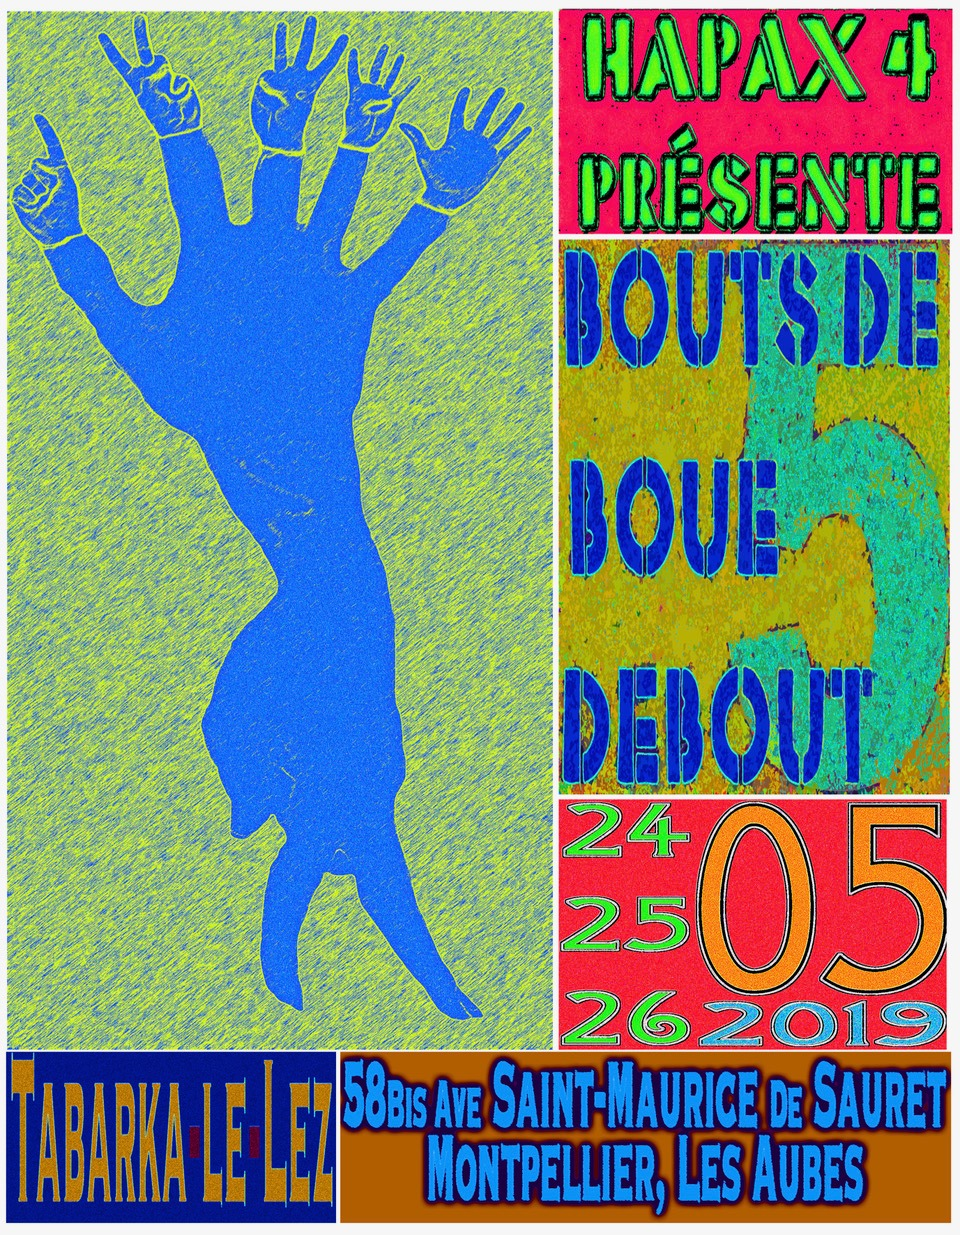 Poster by Alain Mo